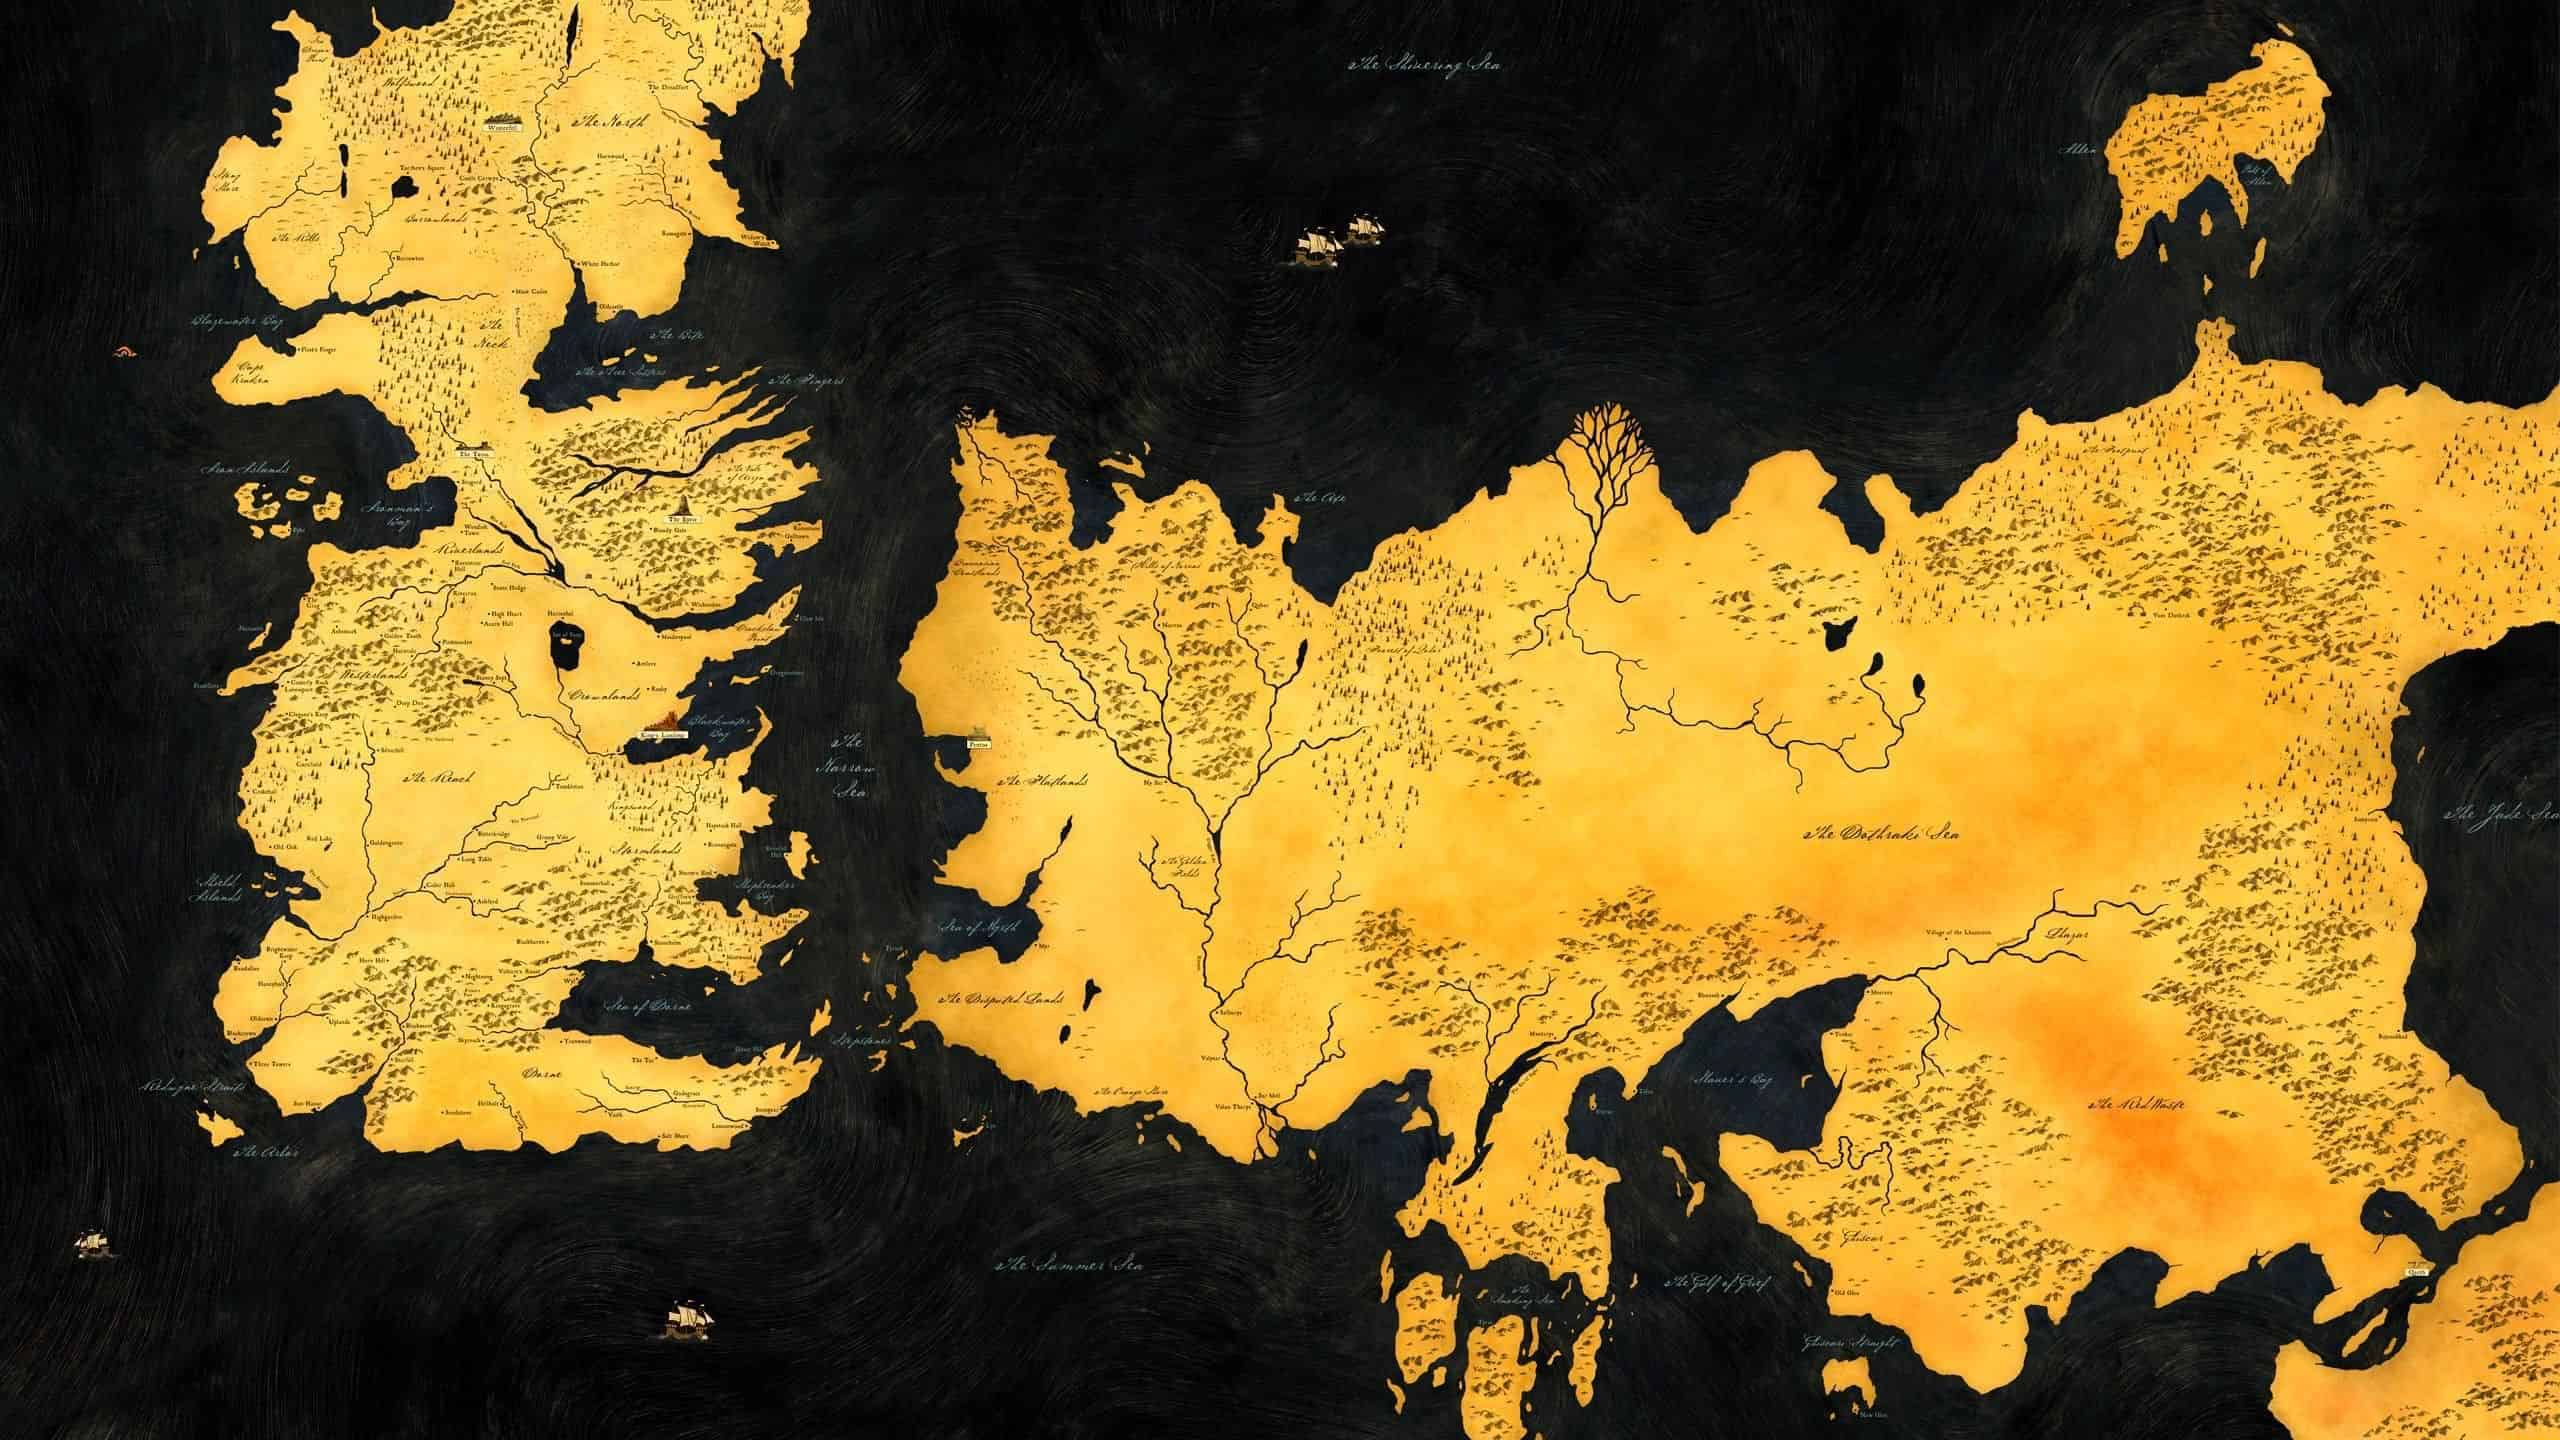 Game Of Thrones Map Of Westeros And Essos Wqhd 1440p Wallpaper